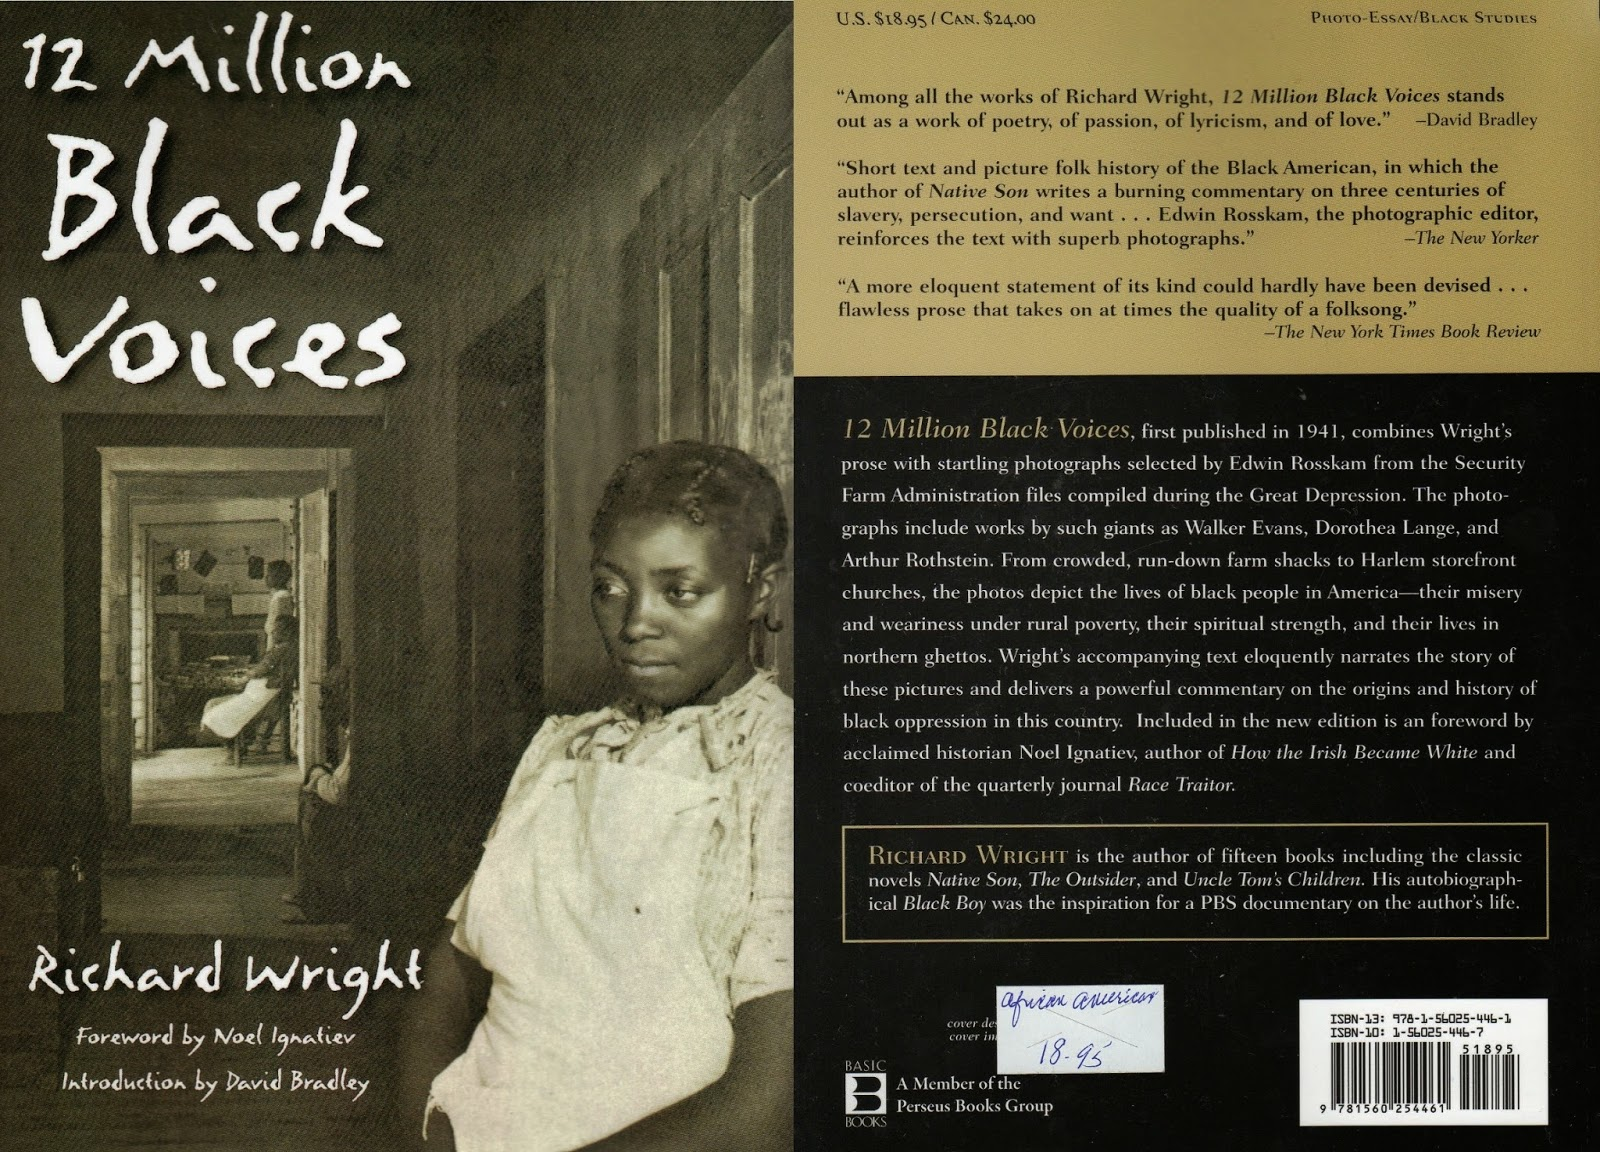 richard wright 12 million black voices Chapters 10-12 chapter 13  but an allusion to part 3 of richard wright's 12 million black voices, a pictorial history of black america published in 1941, the .